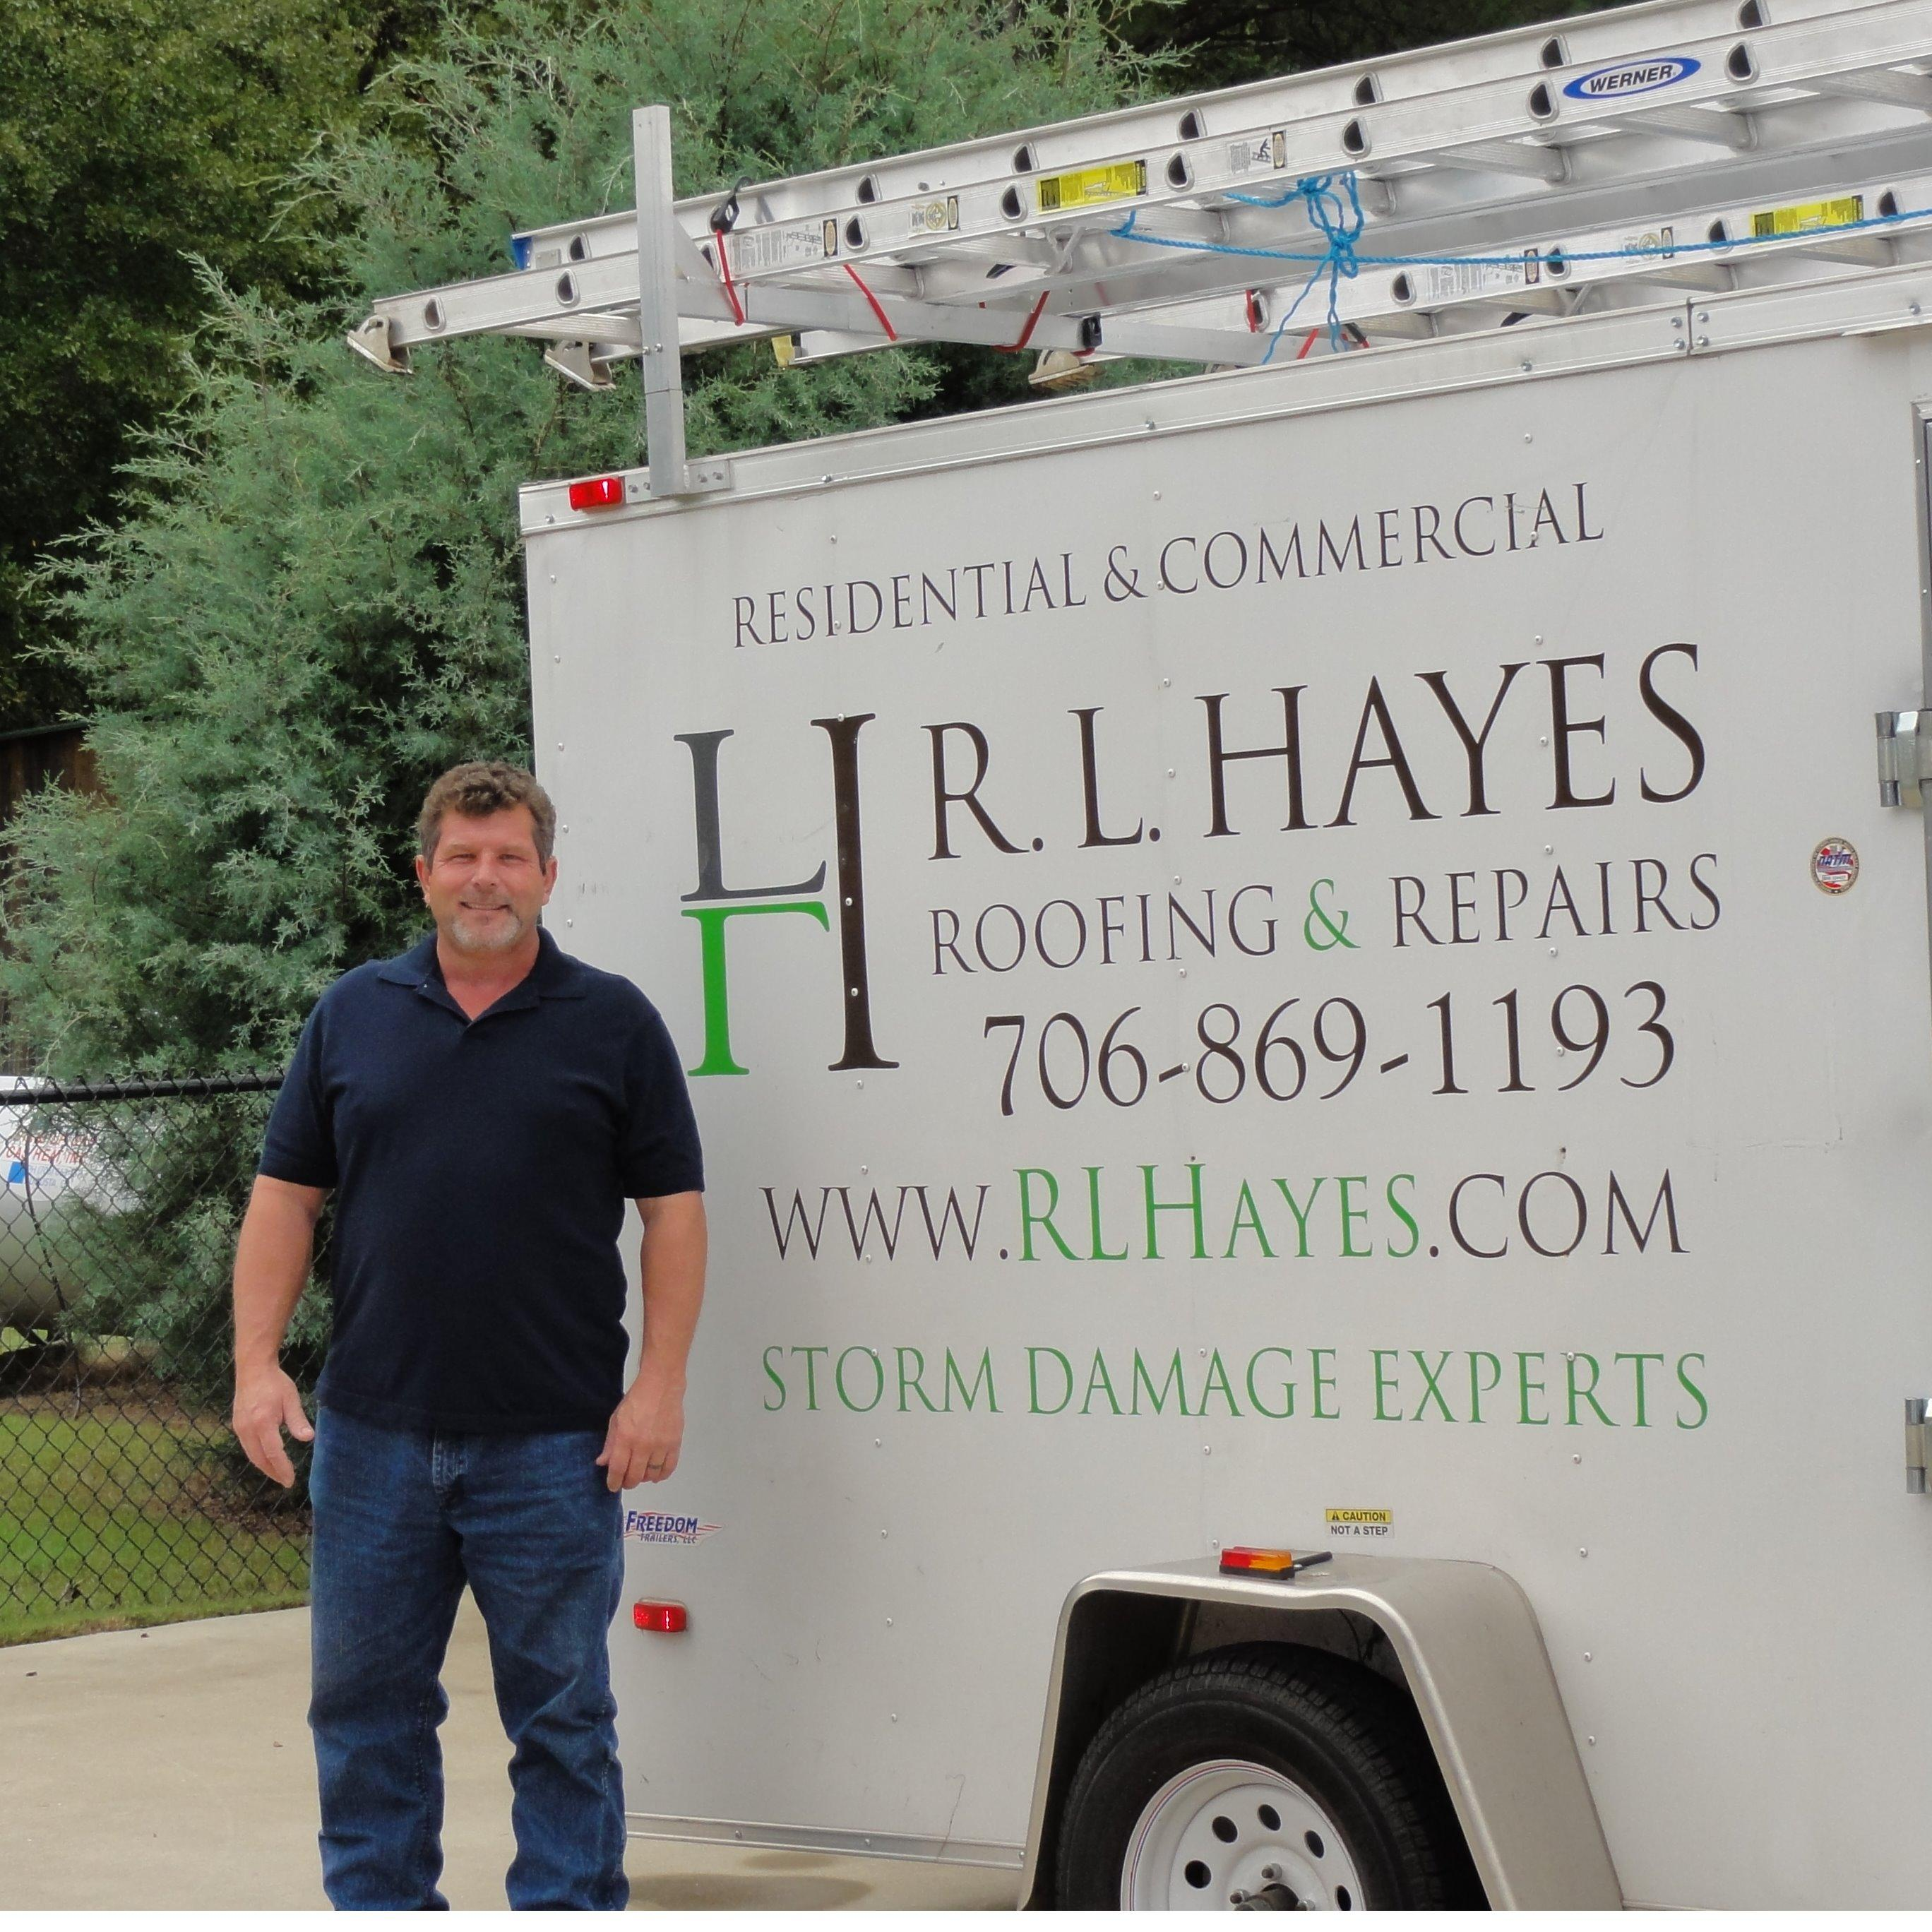 R L Hayes Roofing & Repairs LLC. image 8